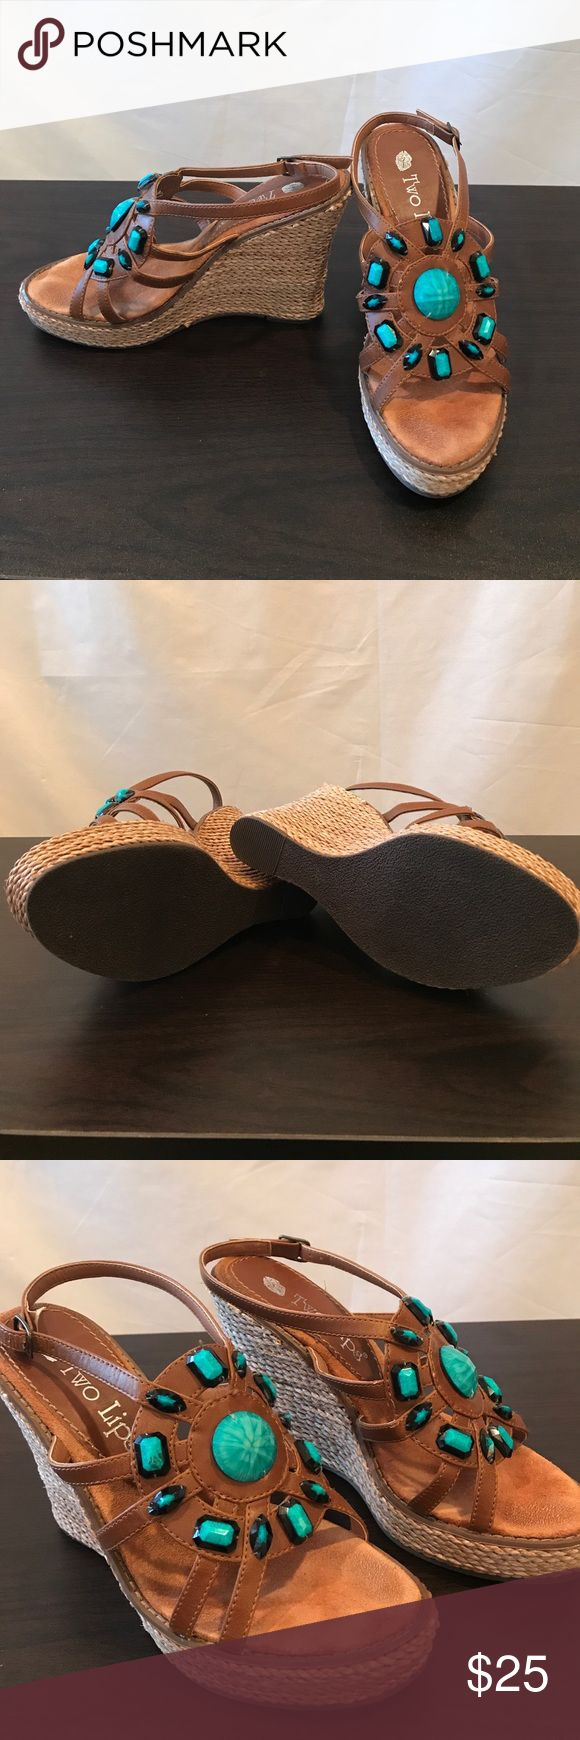 Two Lips Turquoise Wedge Sandals Adorable wedge espadrilles with cognac color suede and turquoise bead detail. Your new go-to summer vacay shoes! Two Lips Shoes Wedges